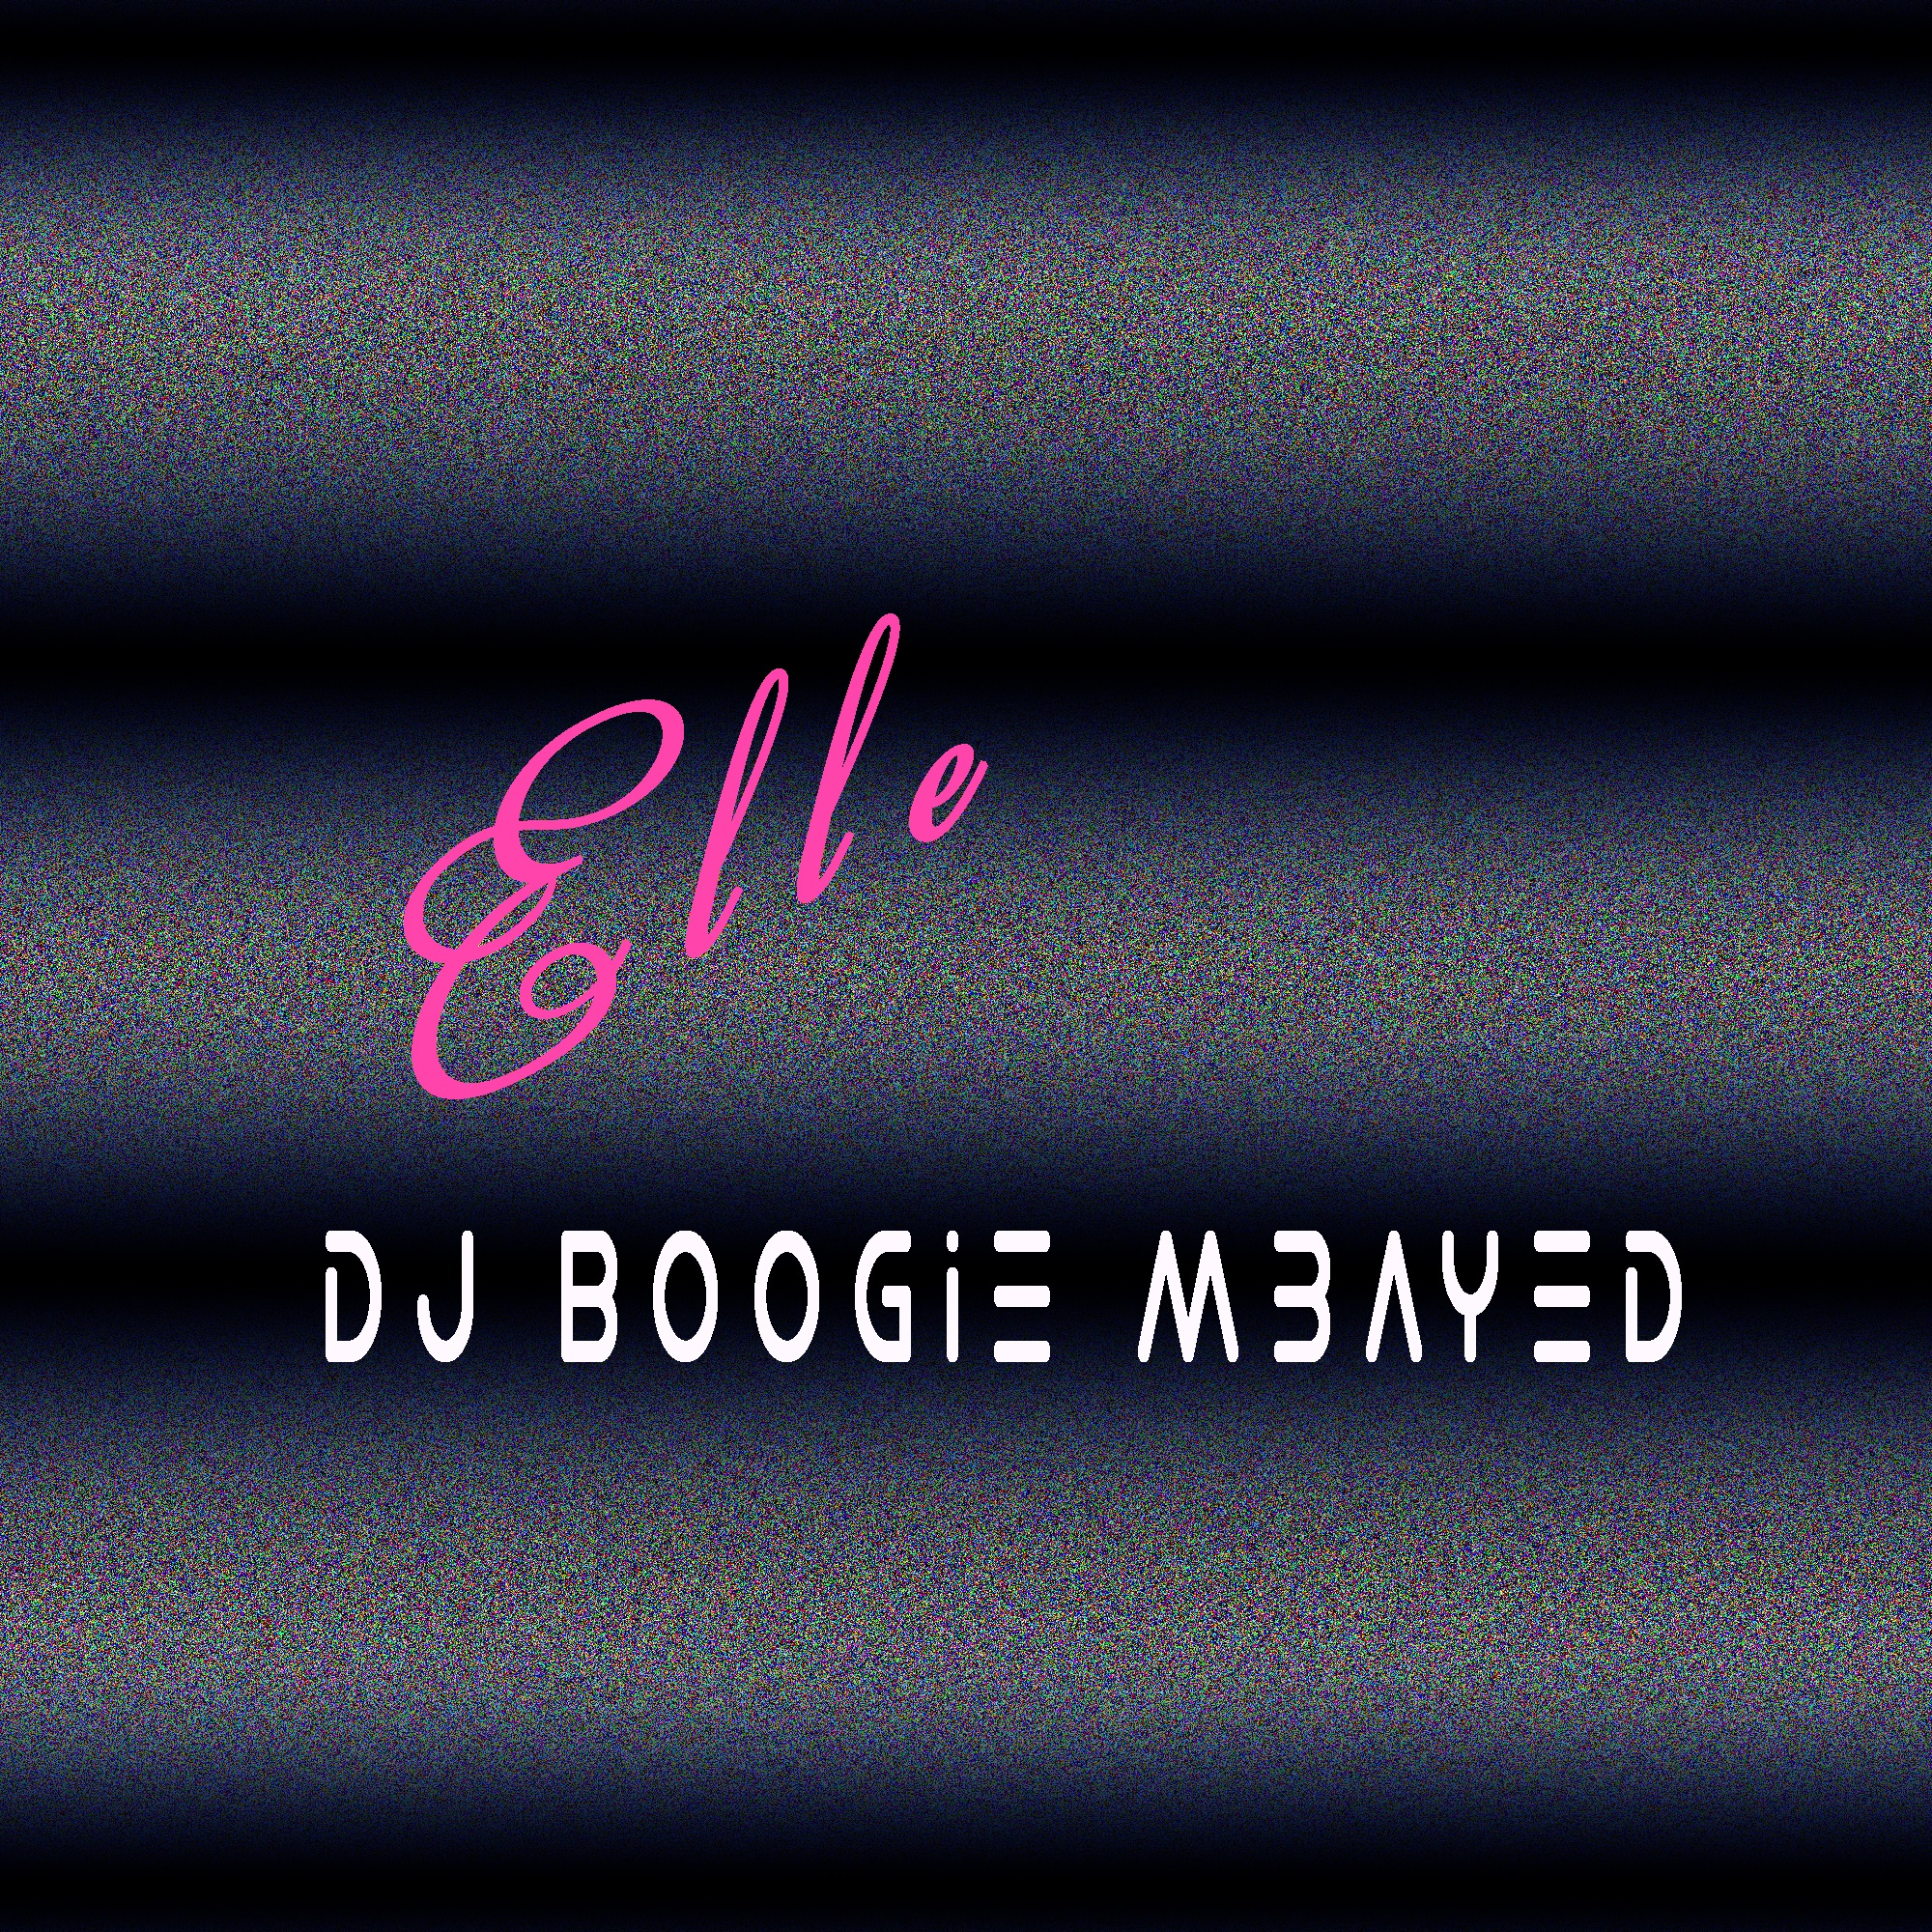 Elle - DJ Boogie Mbayed (Deep Mix)